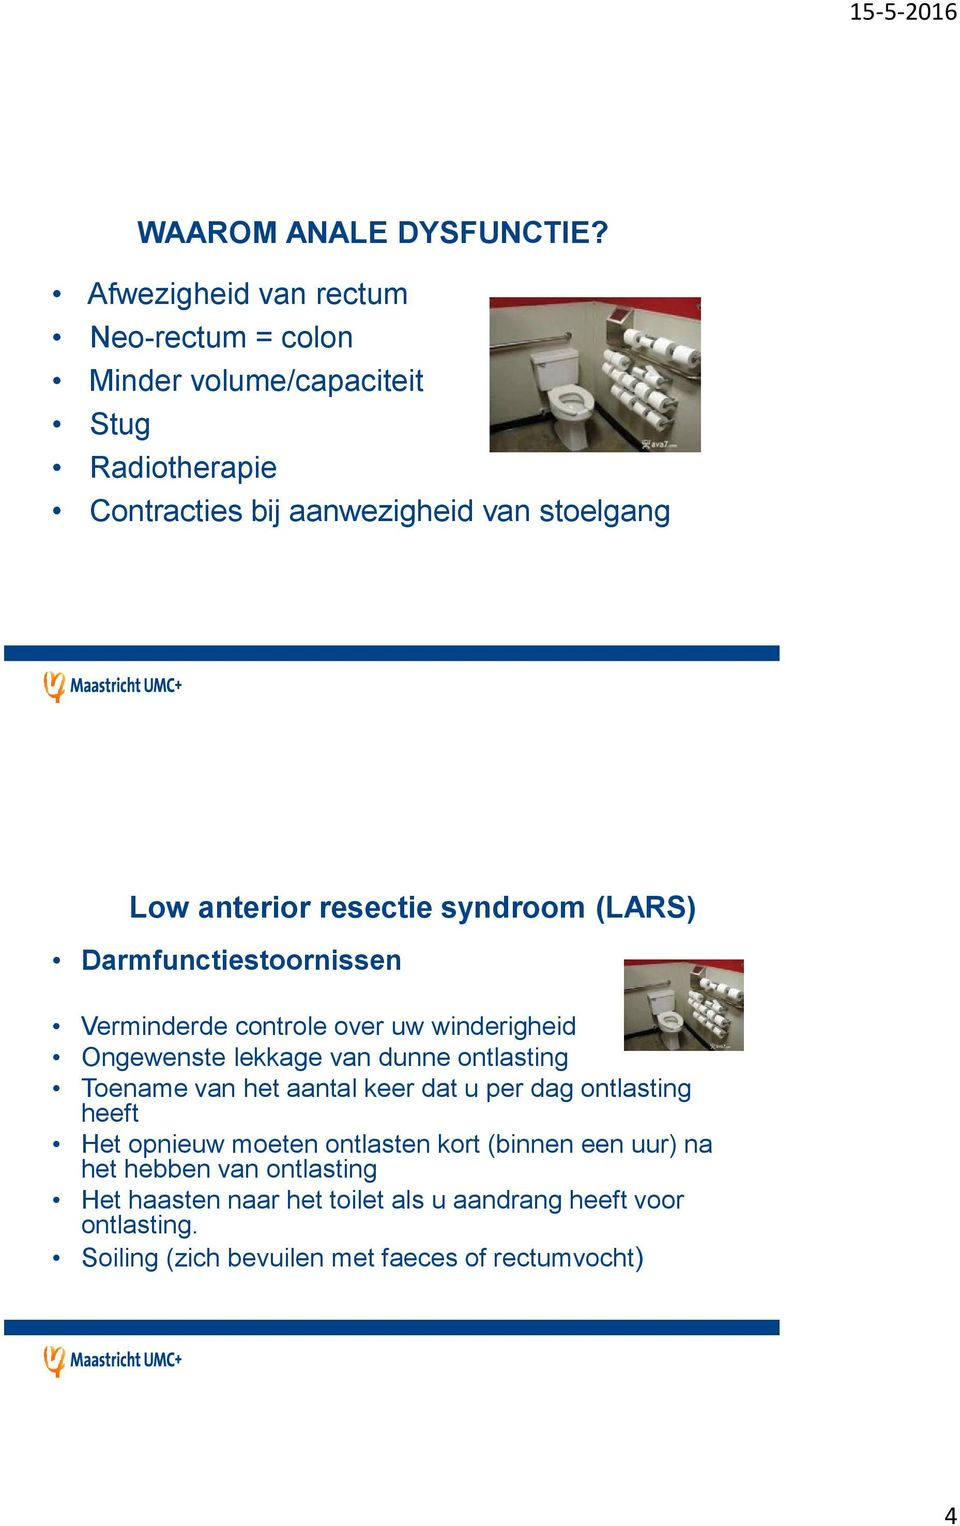 low anterior resectie syndroom